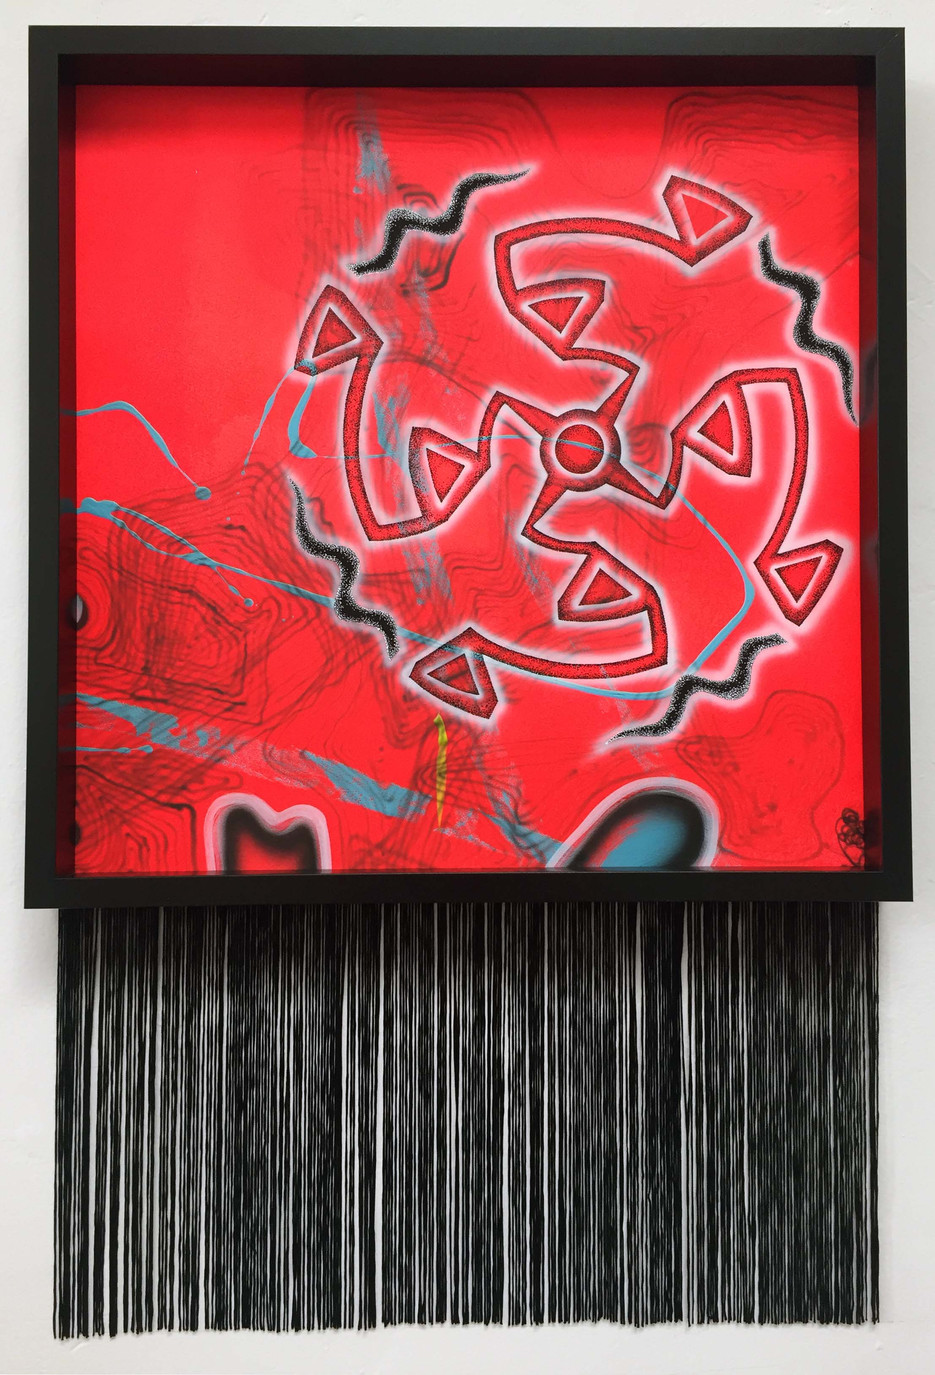 Laurie Steelink Prayer for completion and re-birth of all beings (And by extension II), 2019. Acrylic on paper in wood frame with rayon fringe 19 3/4 x 19 3/4 inches Framed 31 x 20 1/2 x 2 inches